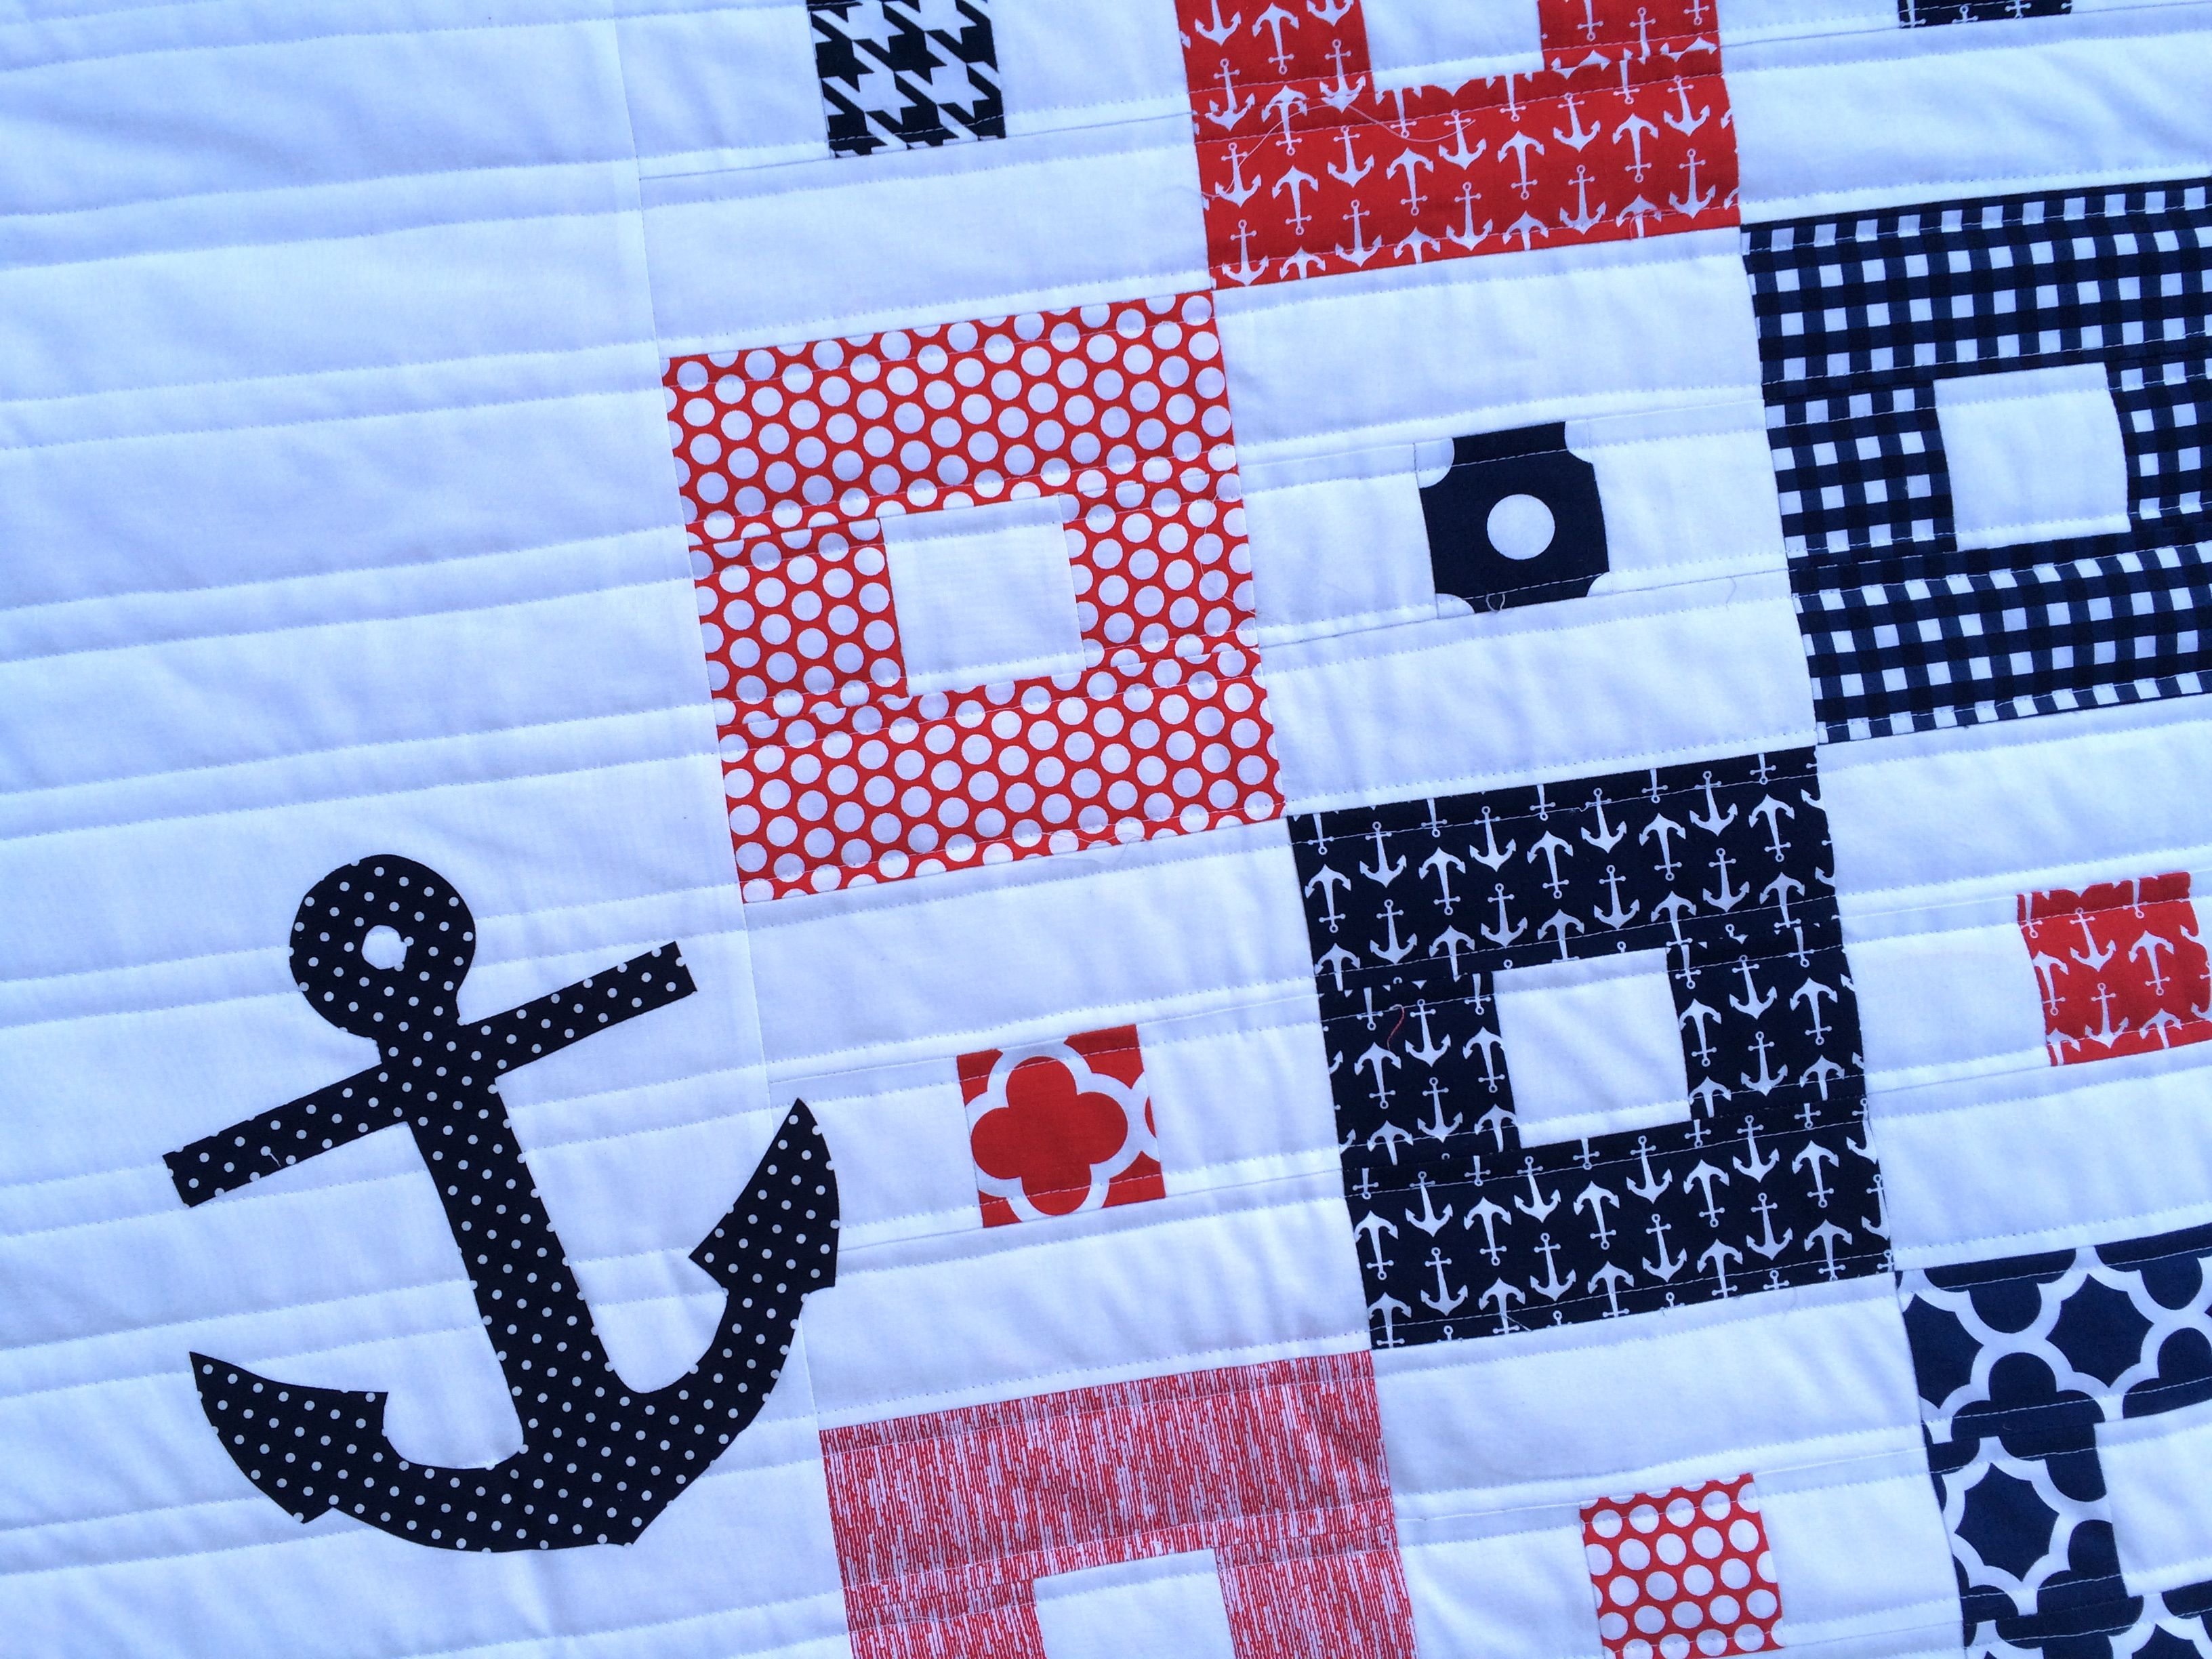 Nautical Mini Quilt Tutorial. Love the quilting lines | sewing ... : nautical quilts patterns - Adamdwight.com